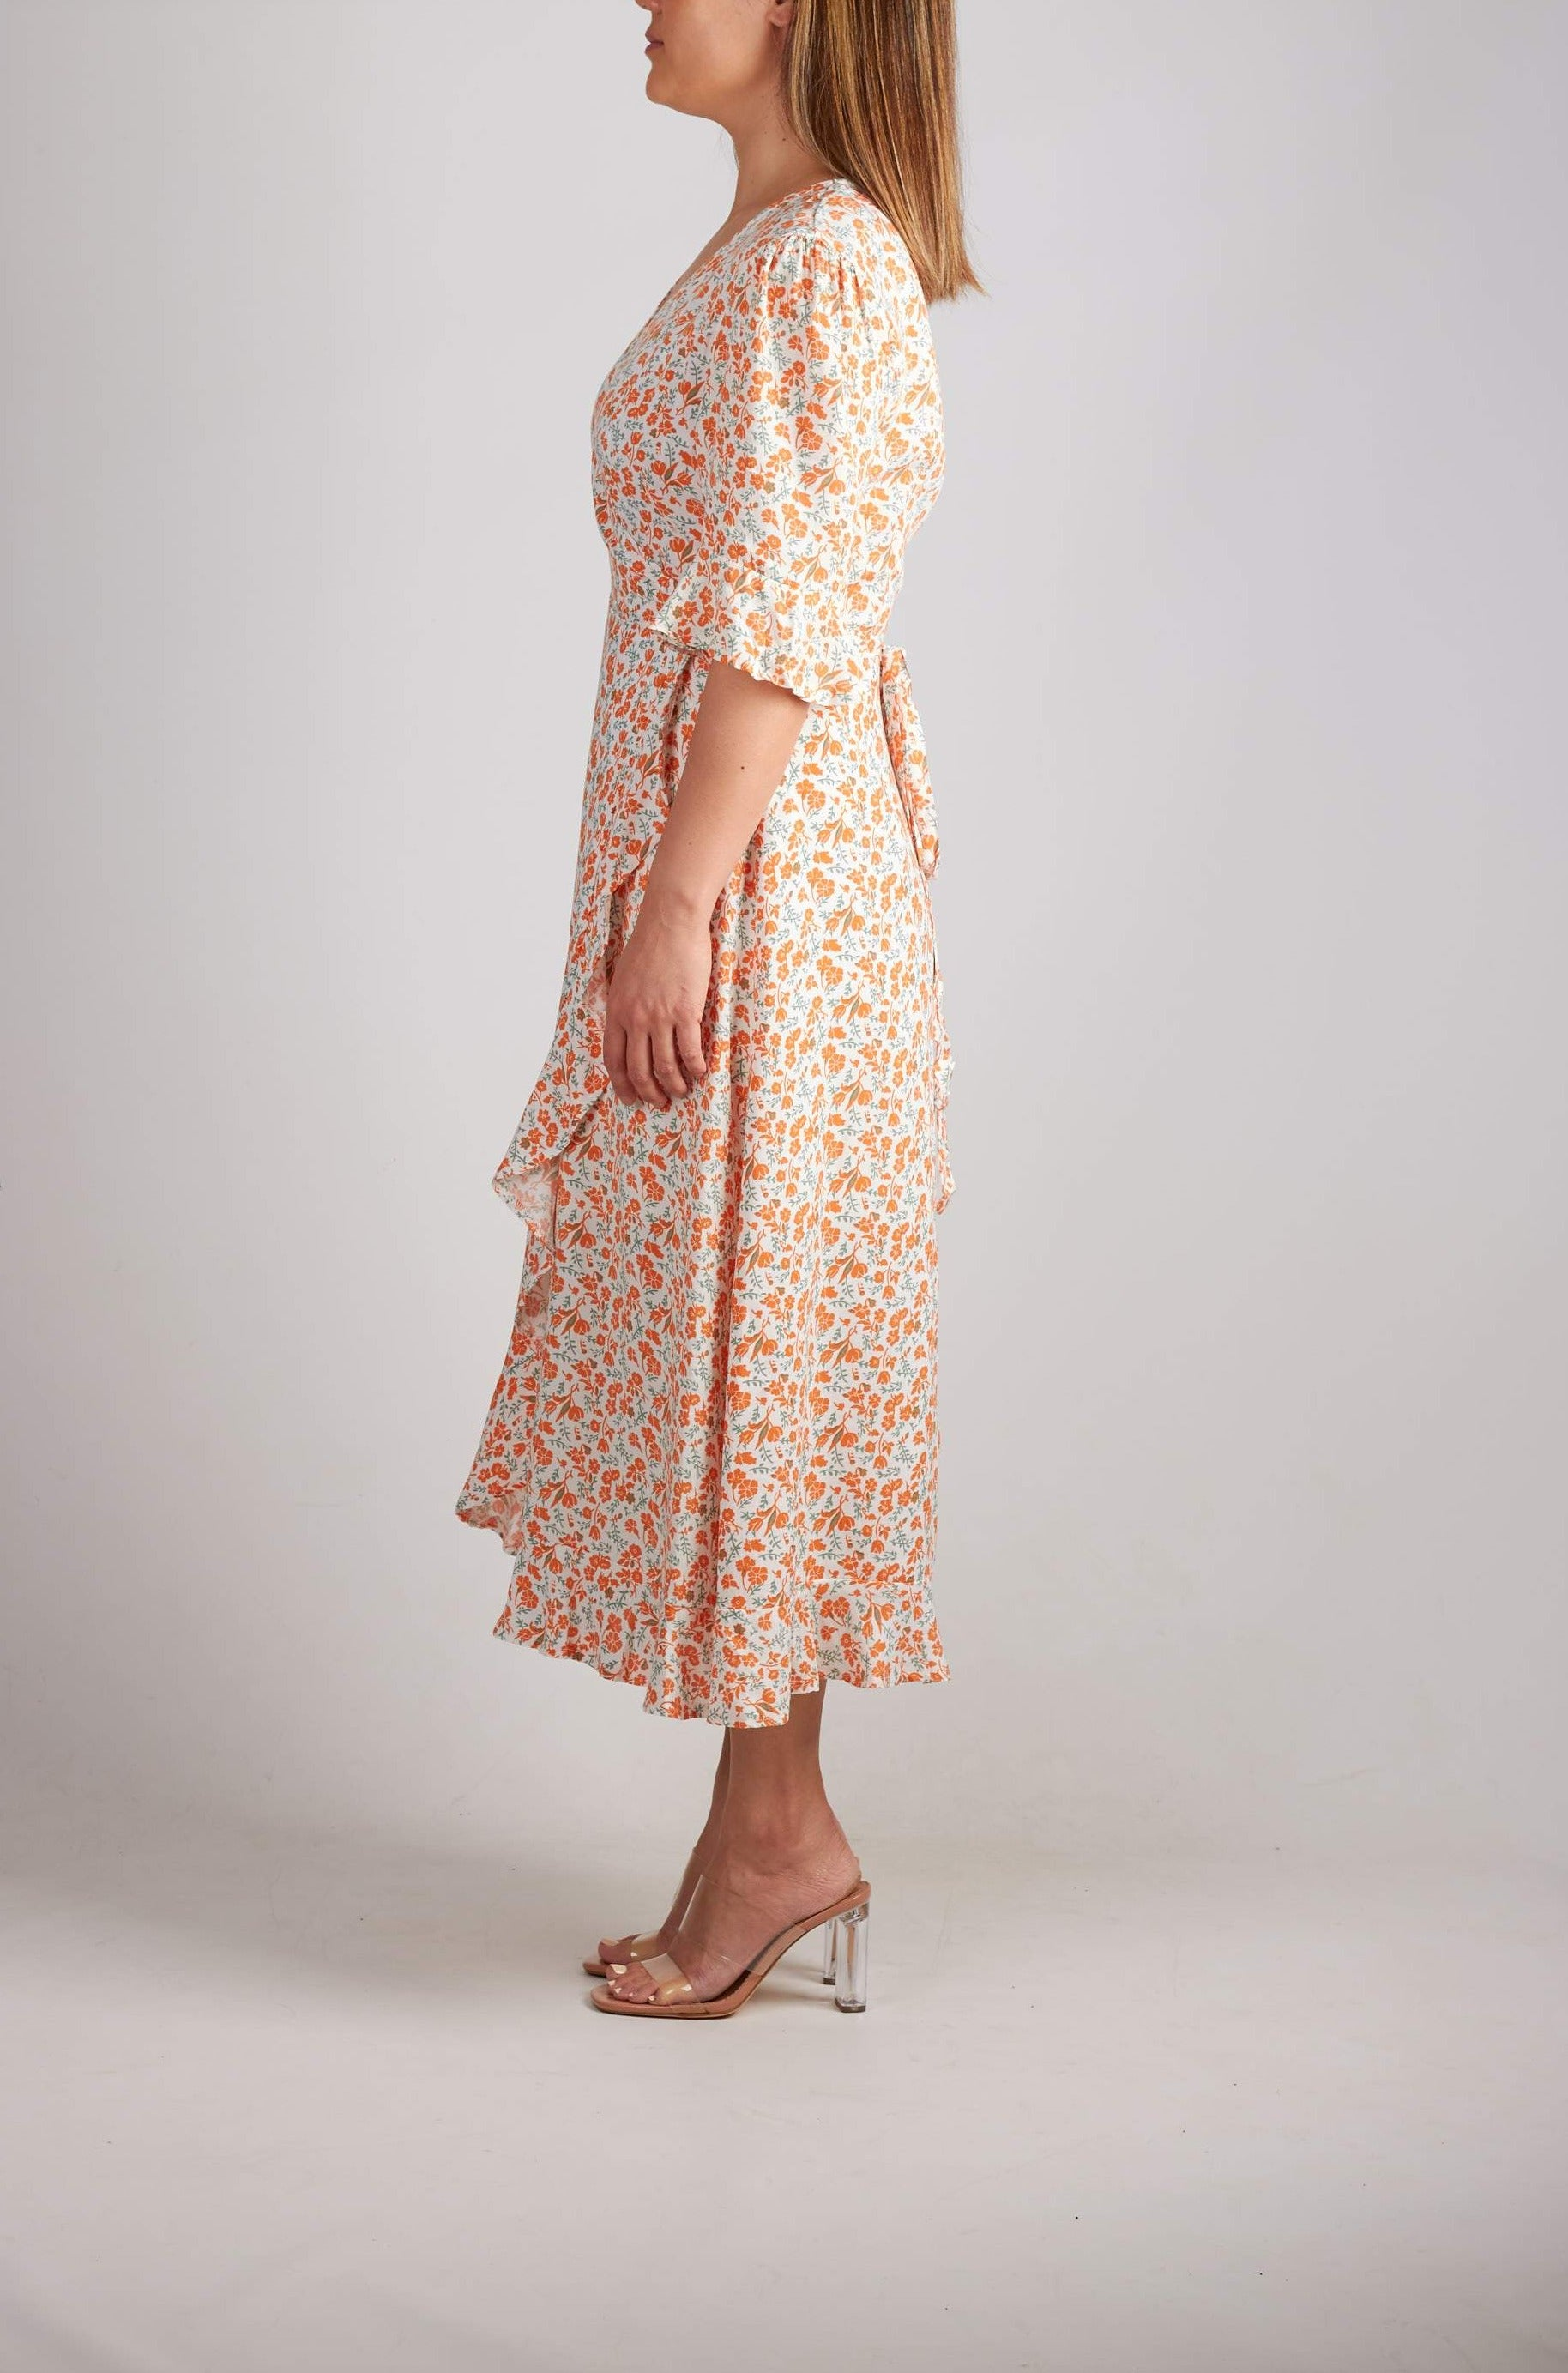 White and orange ditzy floral wrap midi dress with frill hem and sleeves.